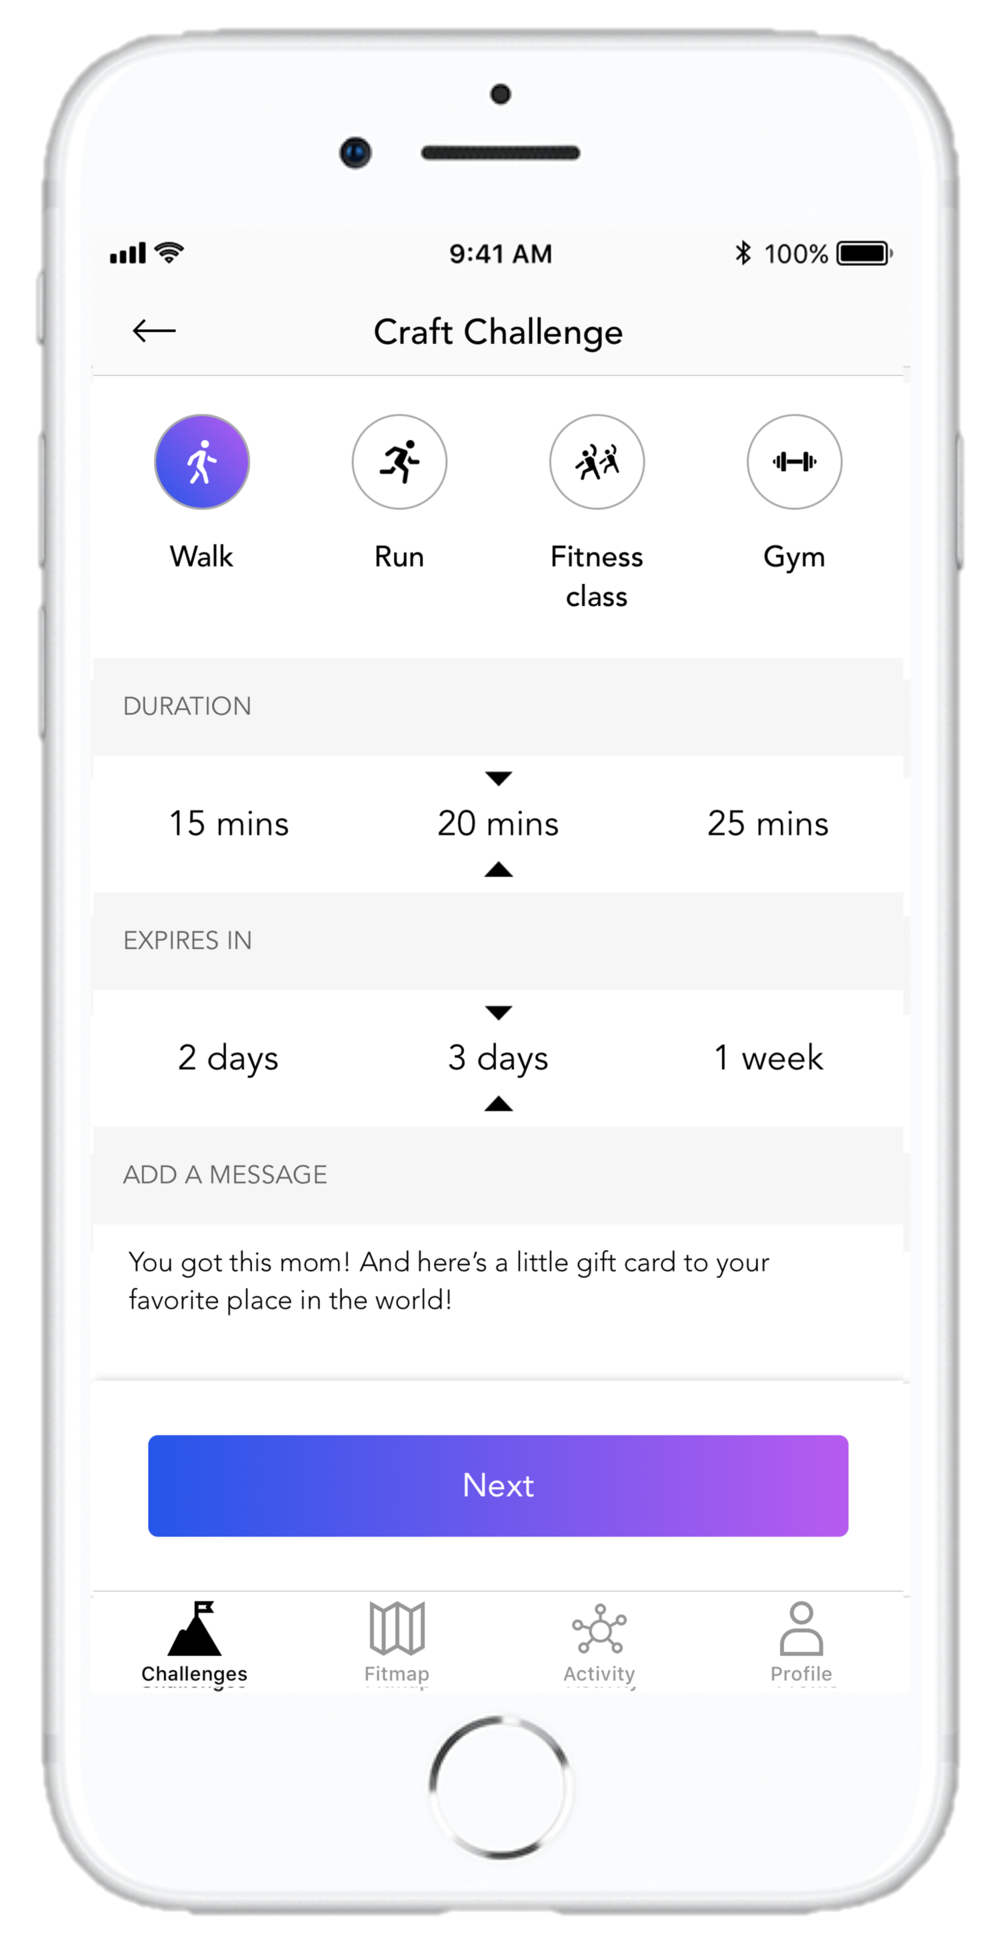 Craft the challenge - Select a challenge type, duration and how long your friend has to complete the challenge. Include a message to give them that extra boost!